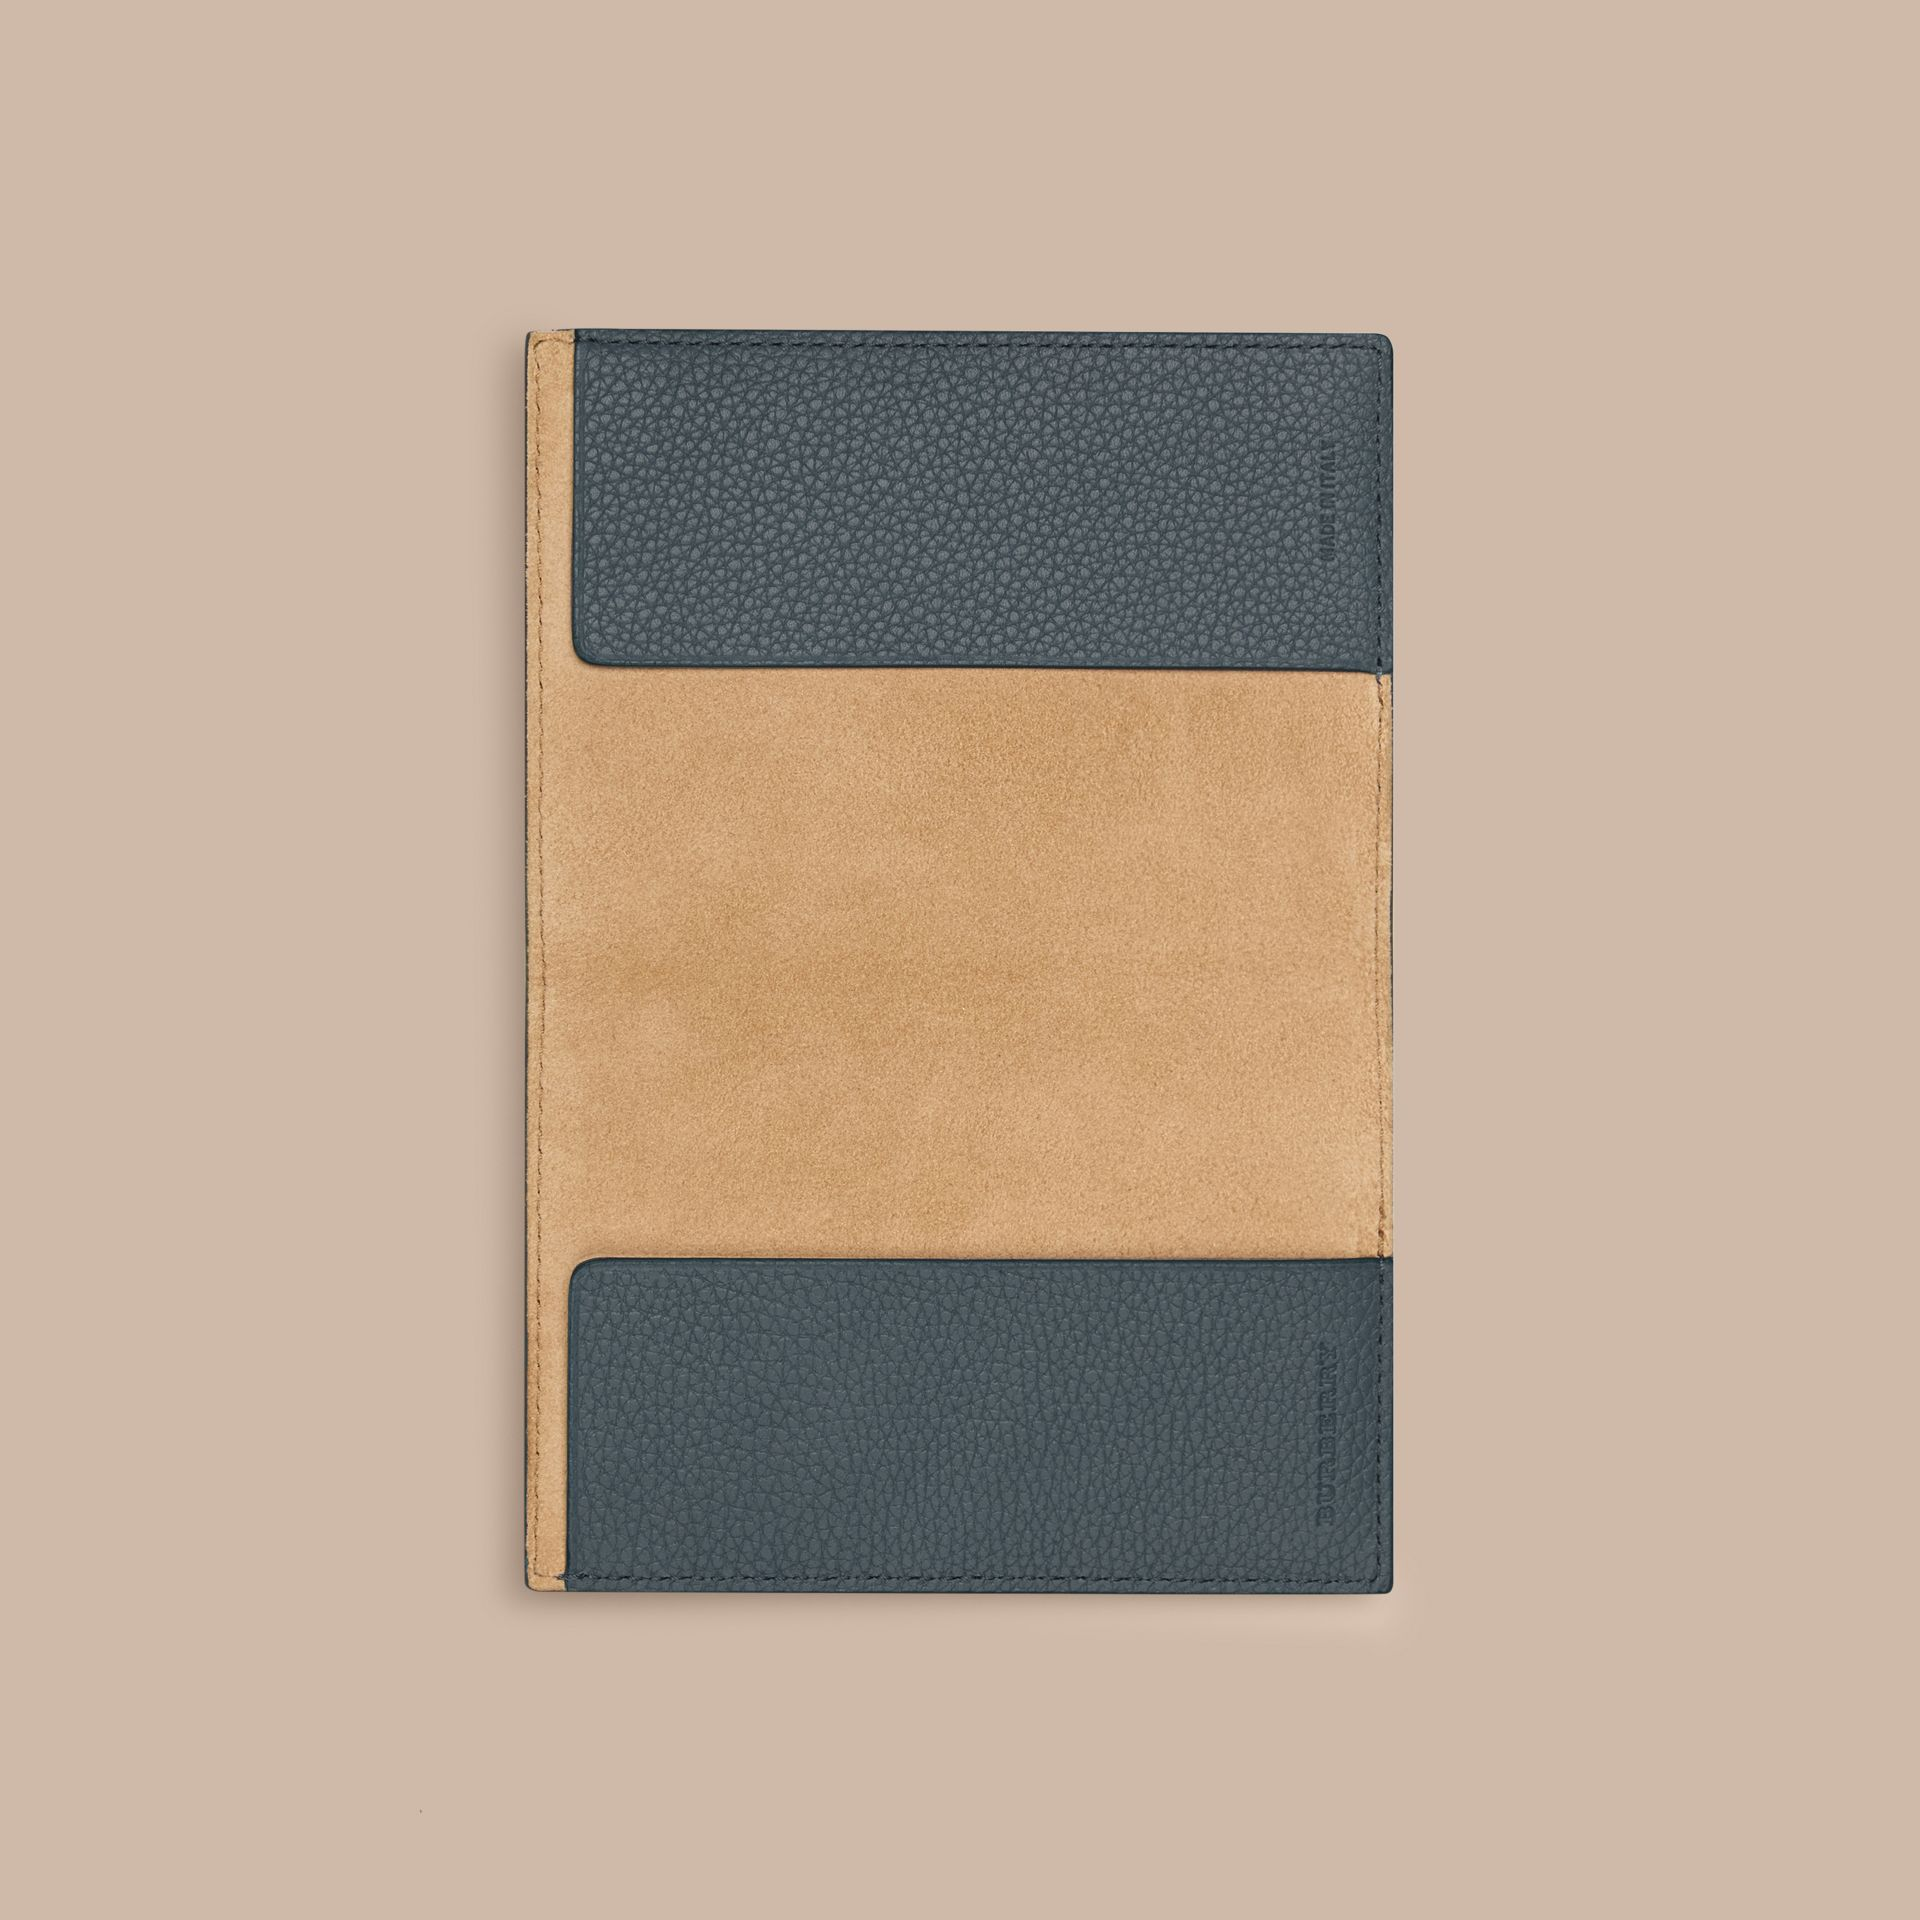 Grainy Leather Passport Cover in Dusty Teal | Burberry Hong Kong - gallery image 2